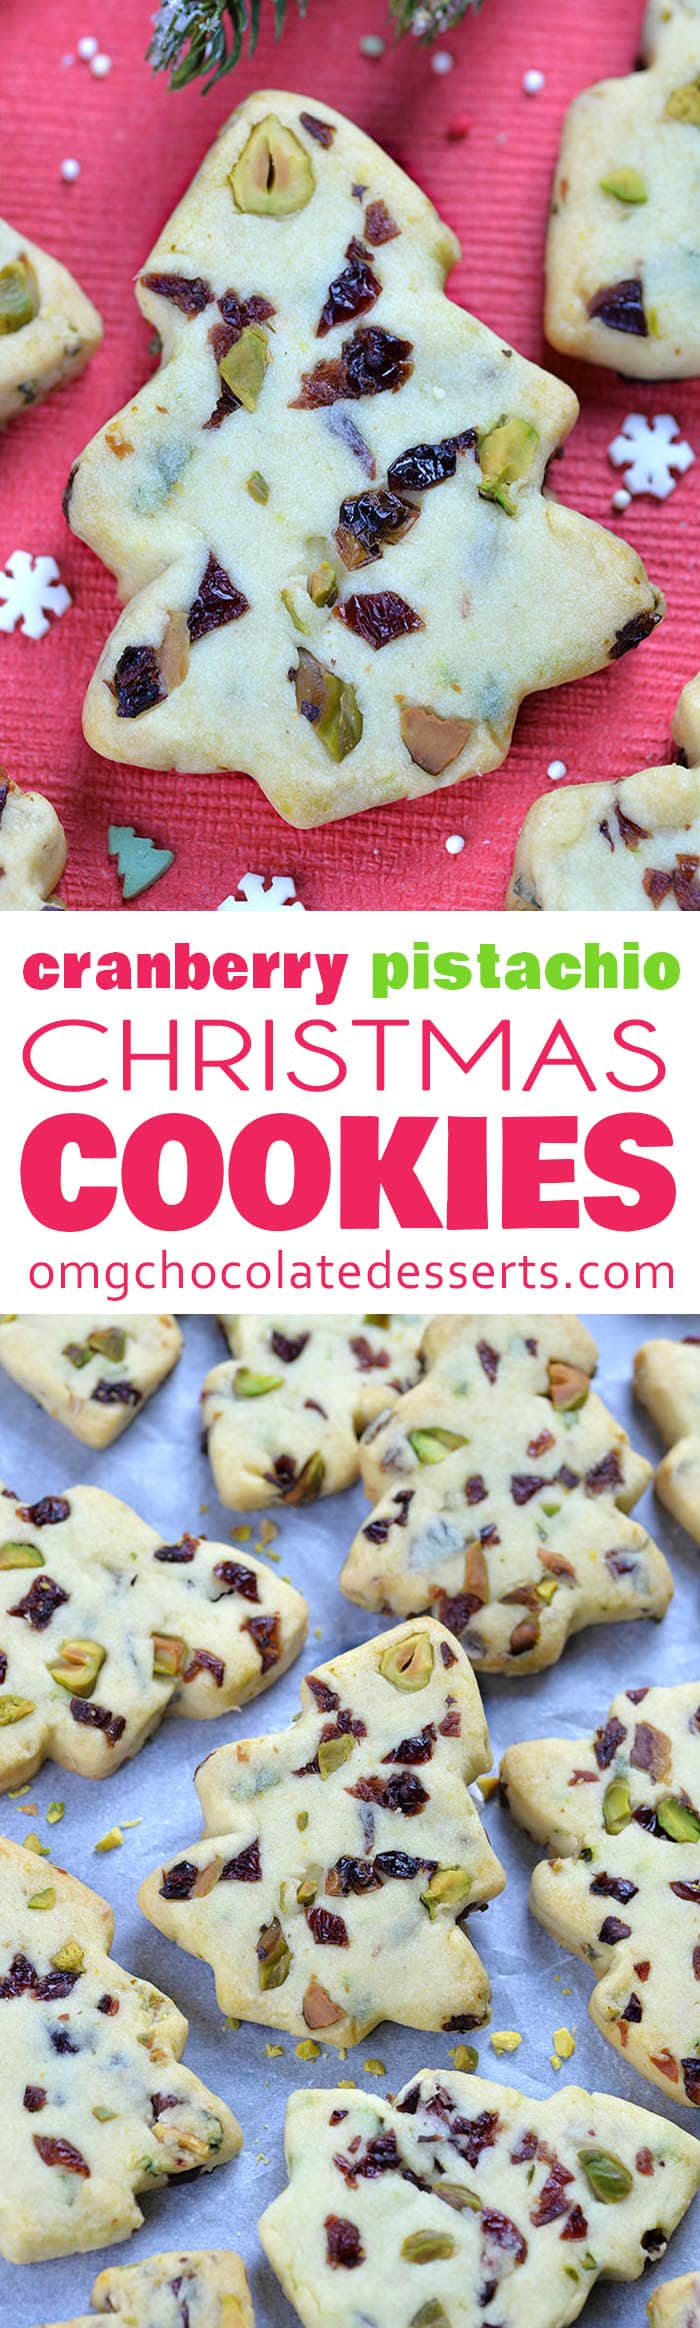 I'm sure Santa would love to grab a few of these Cranberry Pistachio Christmas Shortbread Cookies too, when he stops by to deliver the Christmas gifts.